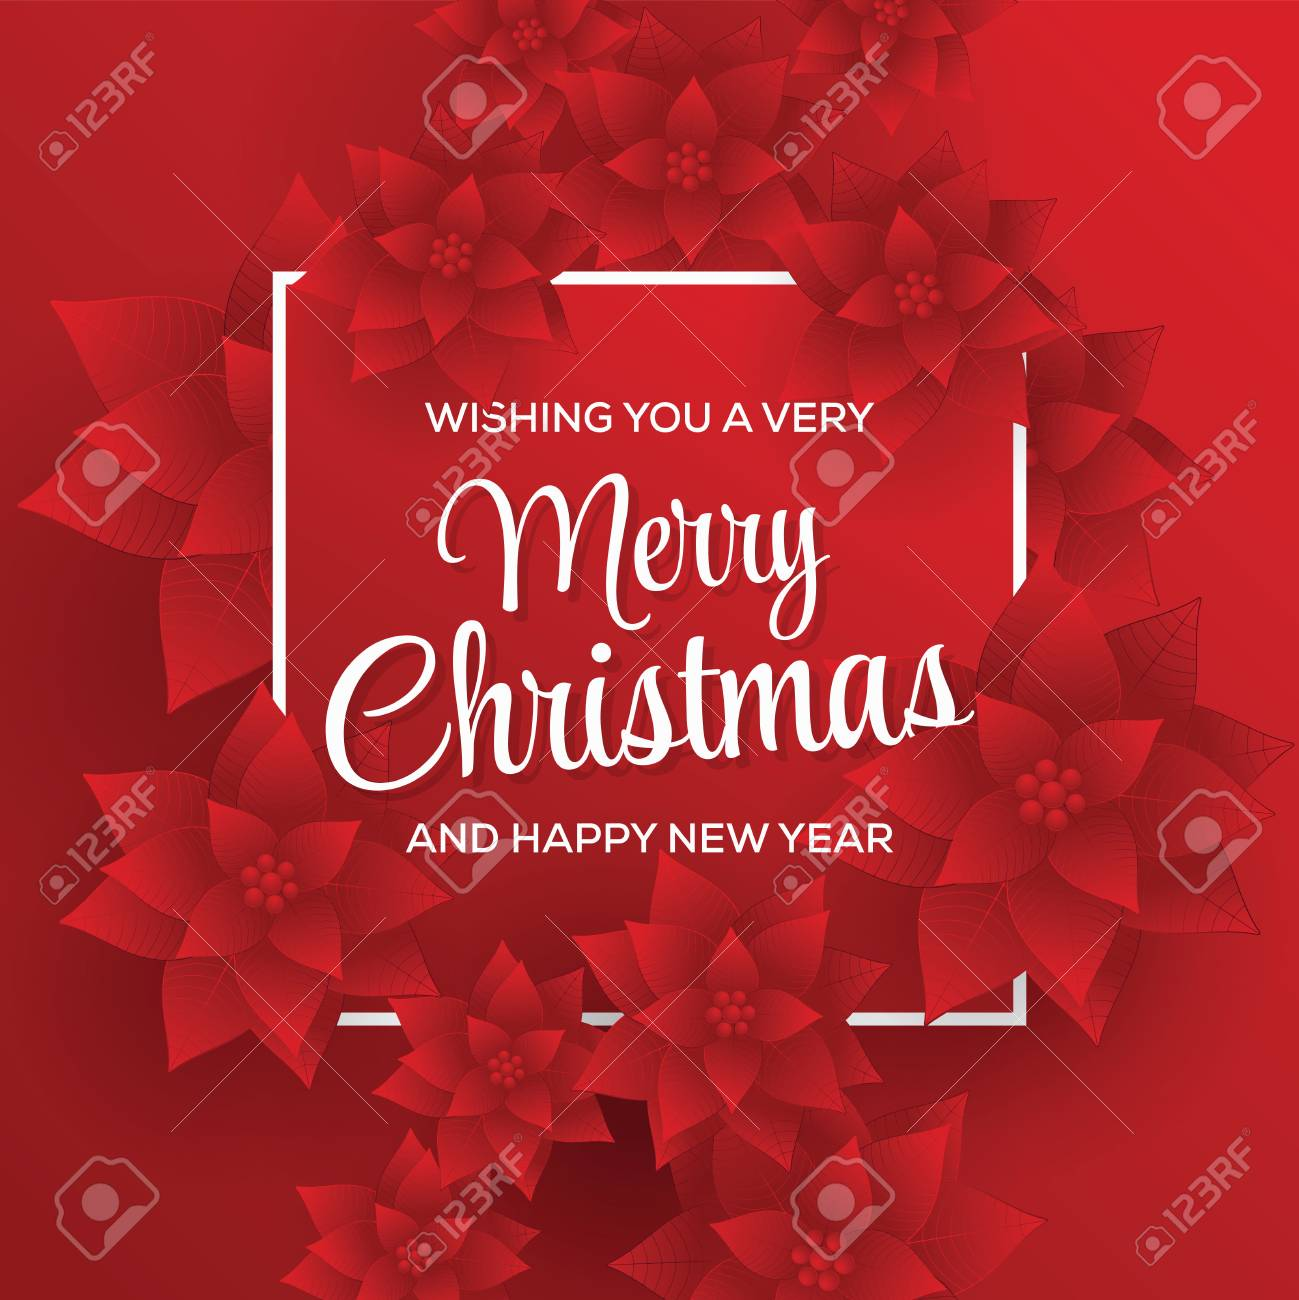 merry christmas card happy new year red background christmas flowers stock